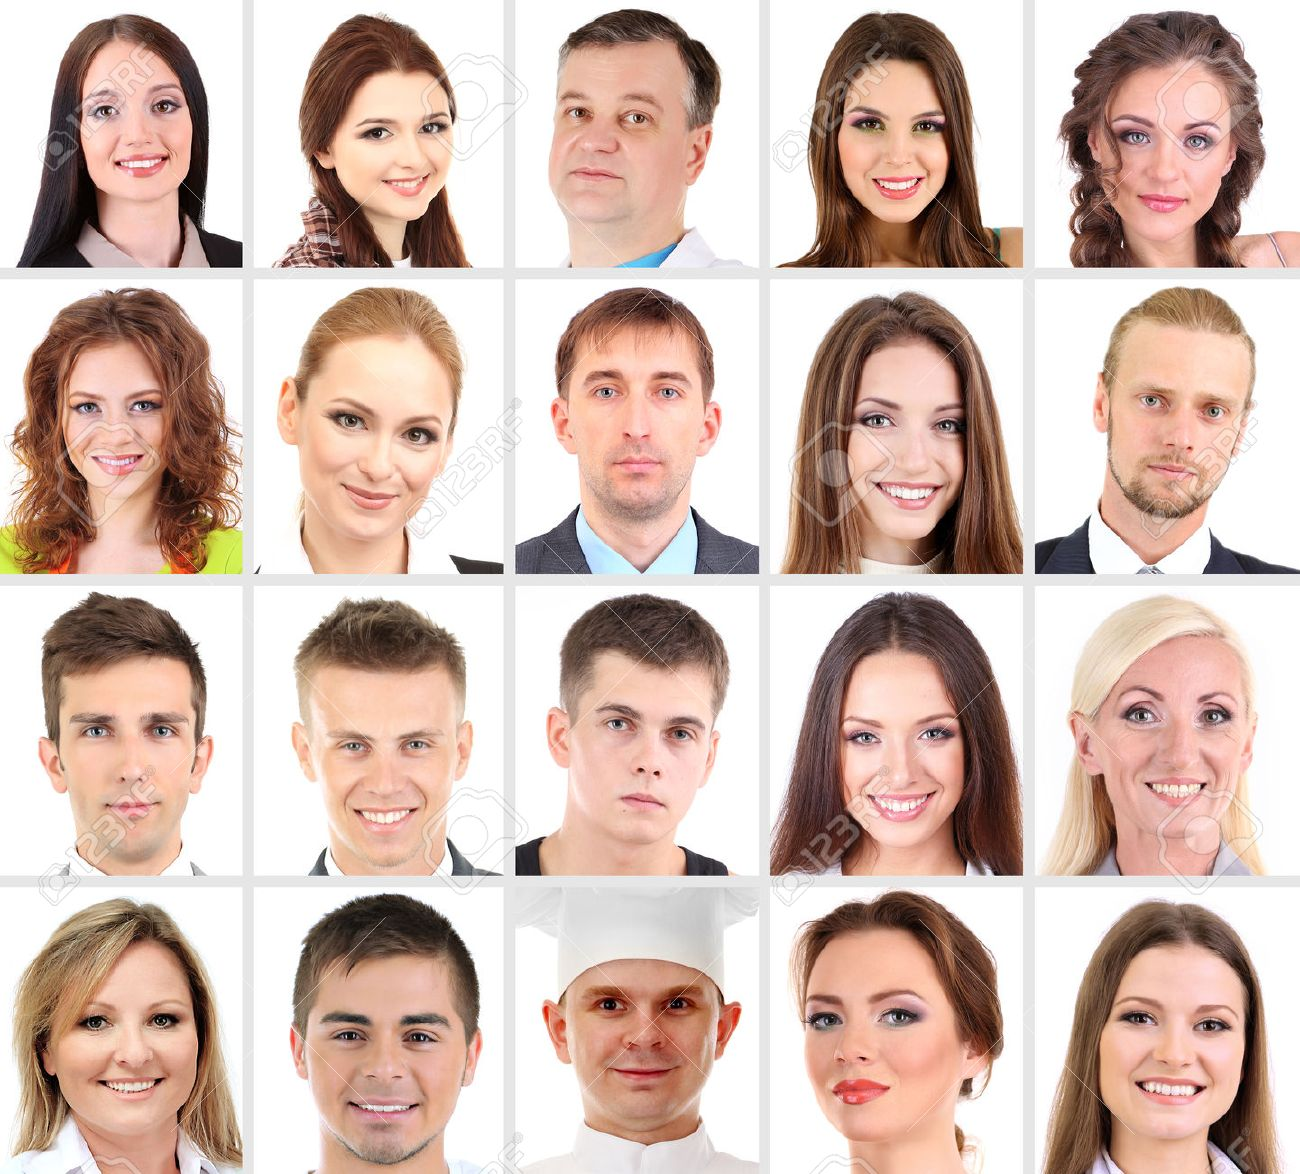 collage of many different human faces stock photo picture and